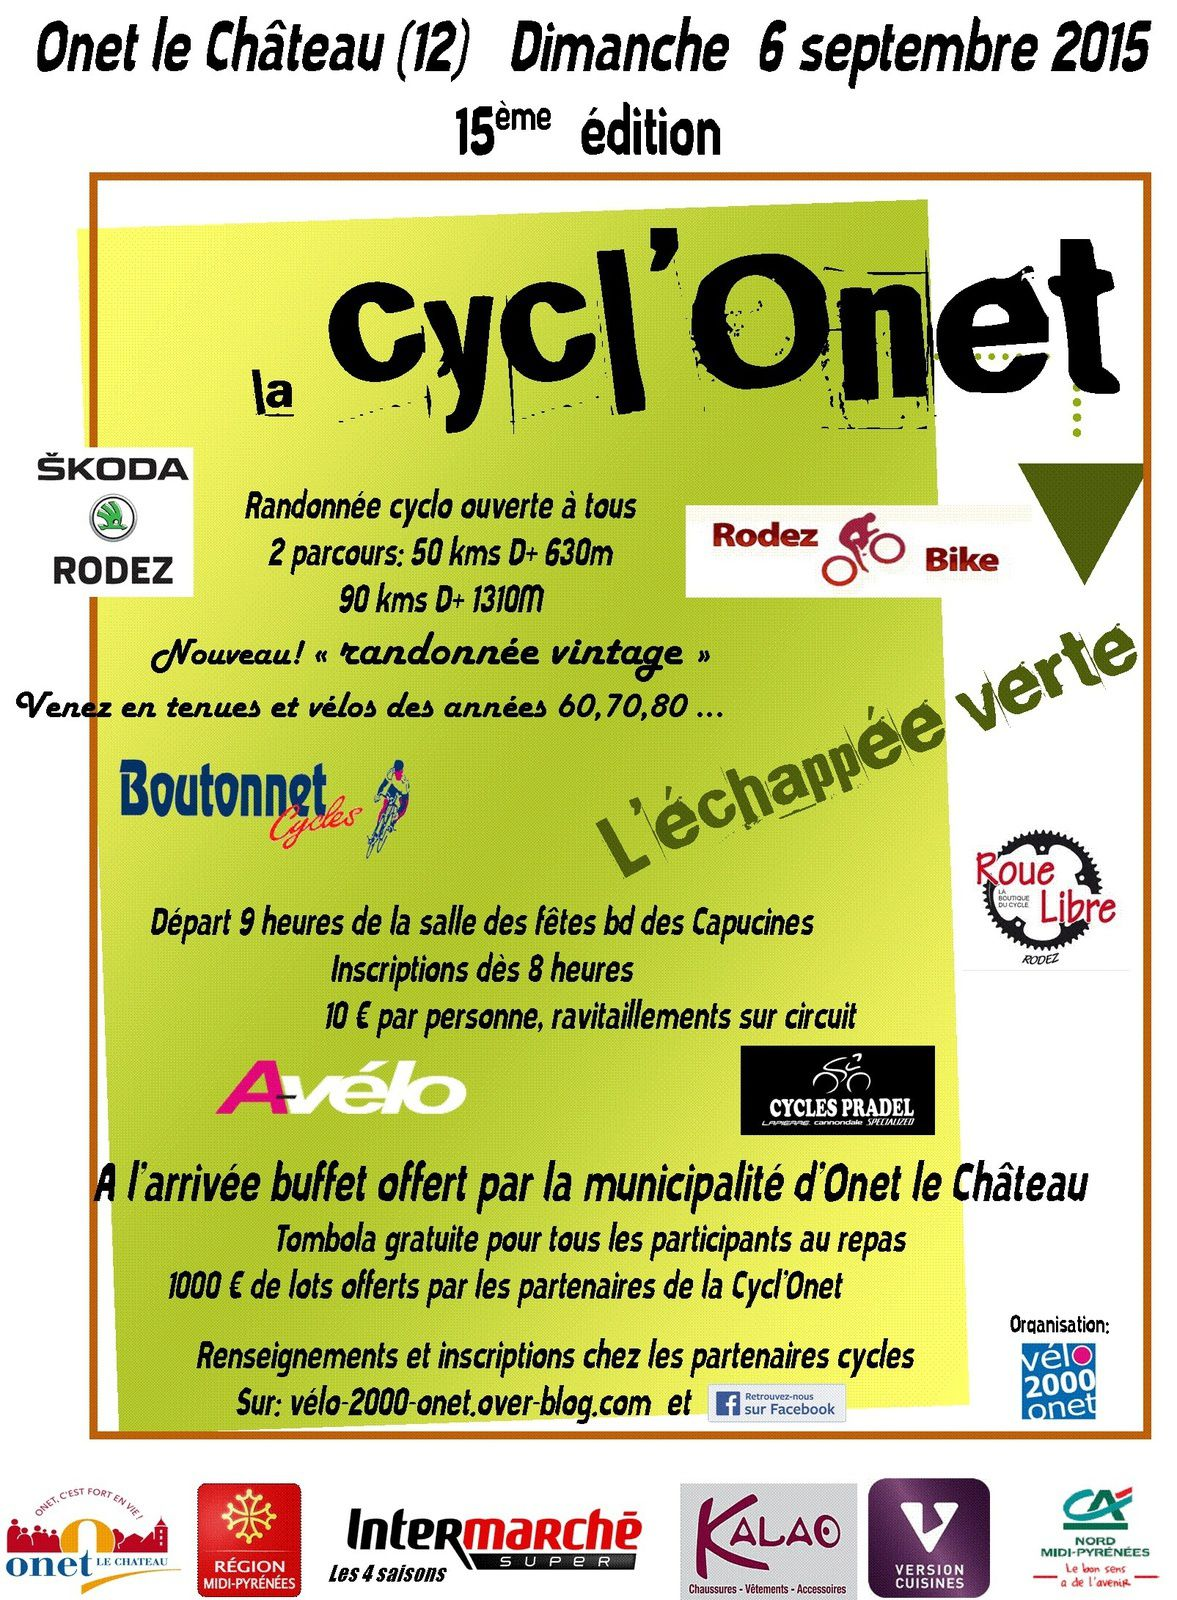 CYCL'ONET 2015